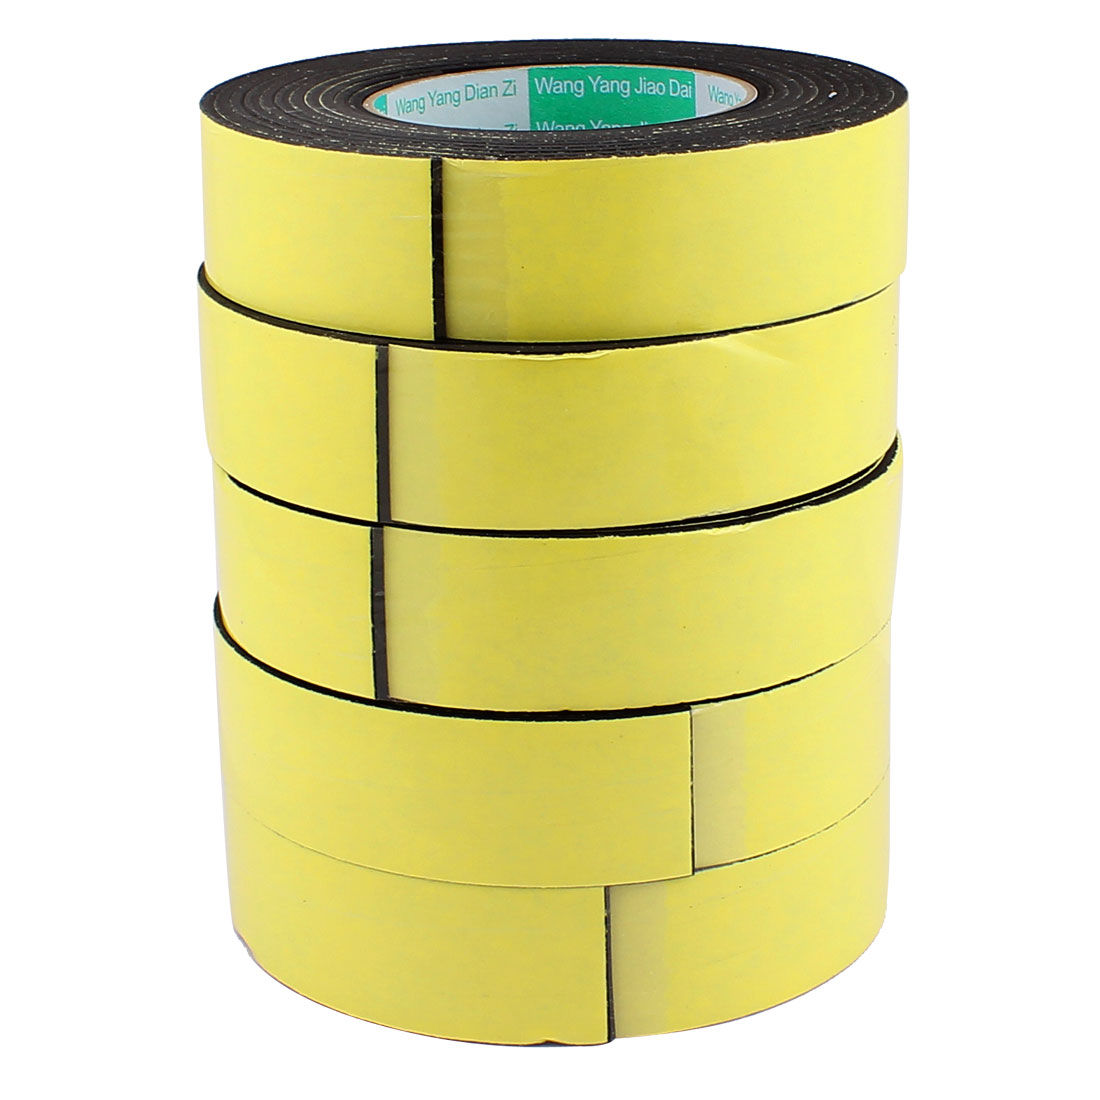 5 Pcs 3.5CM Width 4M Length 3MM Thick Single Sided Sealing Shockproof Sponge Tape